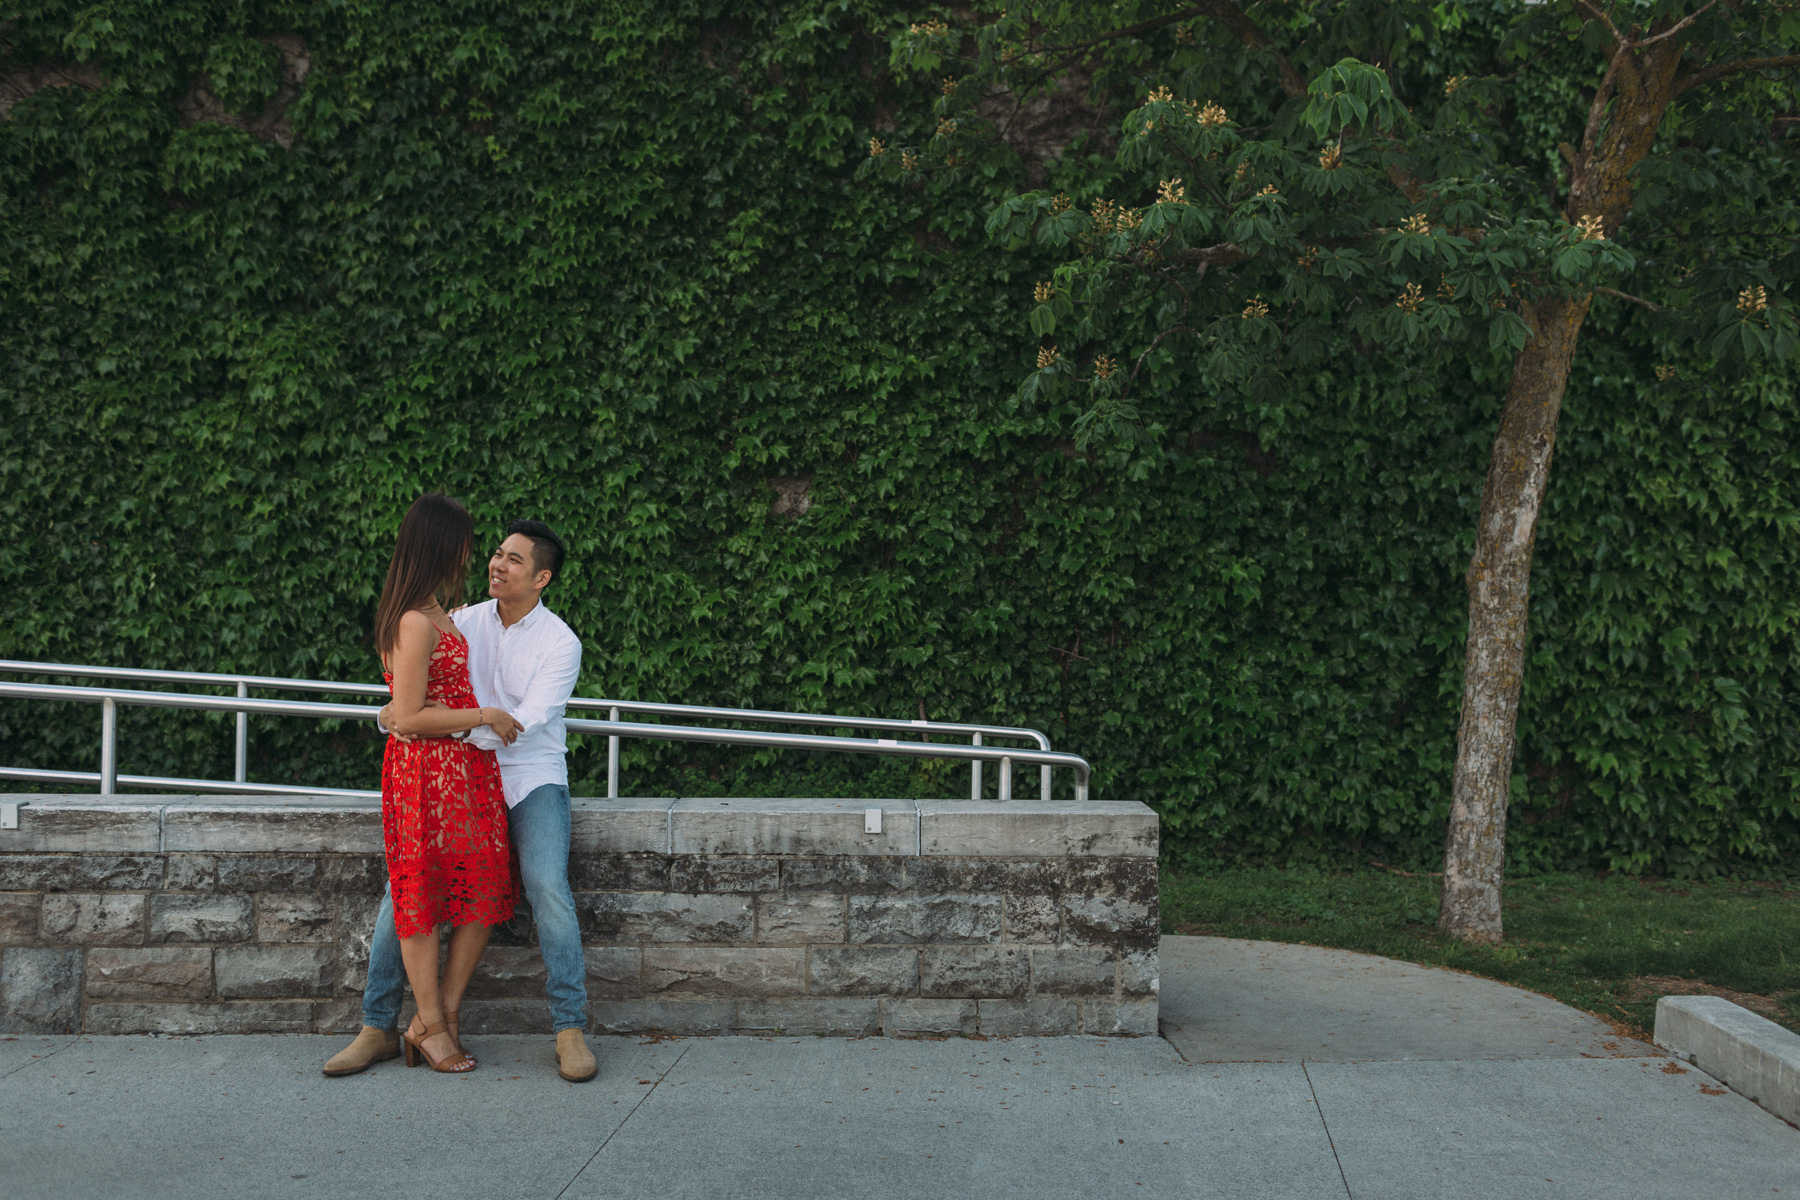 Queens-University-engagement-session-Kingston-Christine-and-Michael-by-Sam-Wong-of-Artanis-Collective_008.jpg